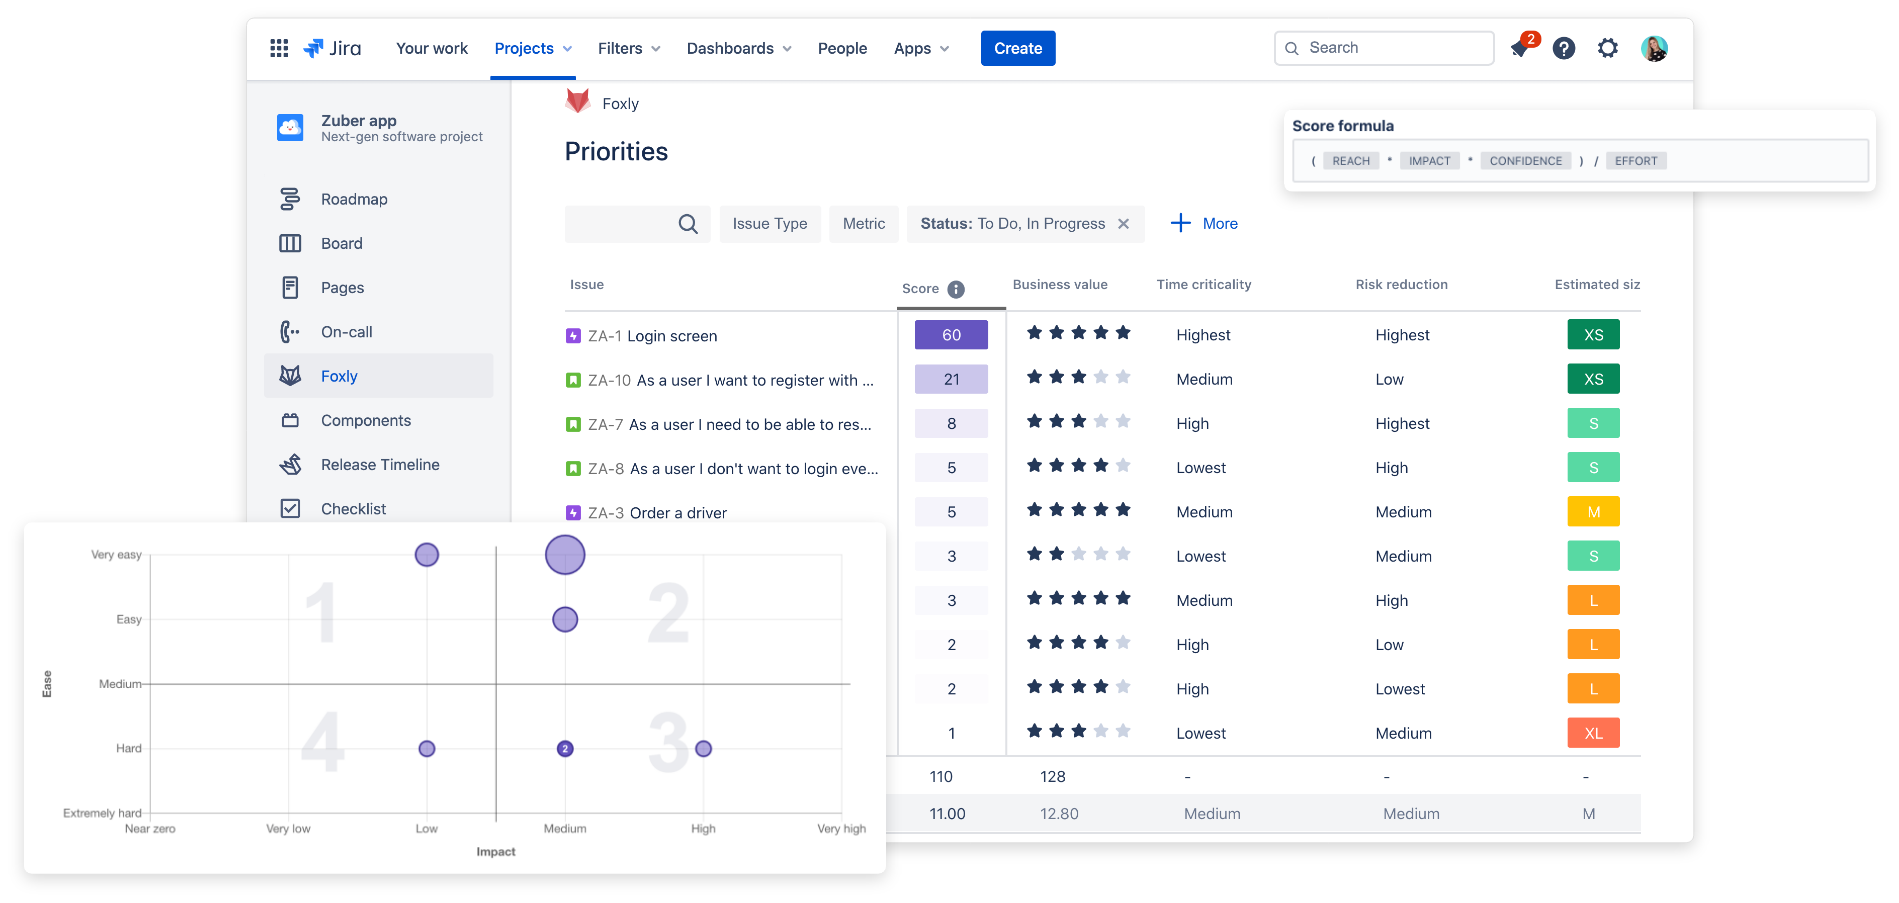 Foxly is a Jira backlog prioritization plugin